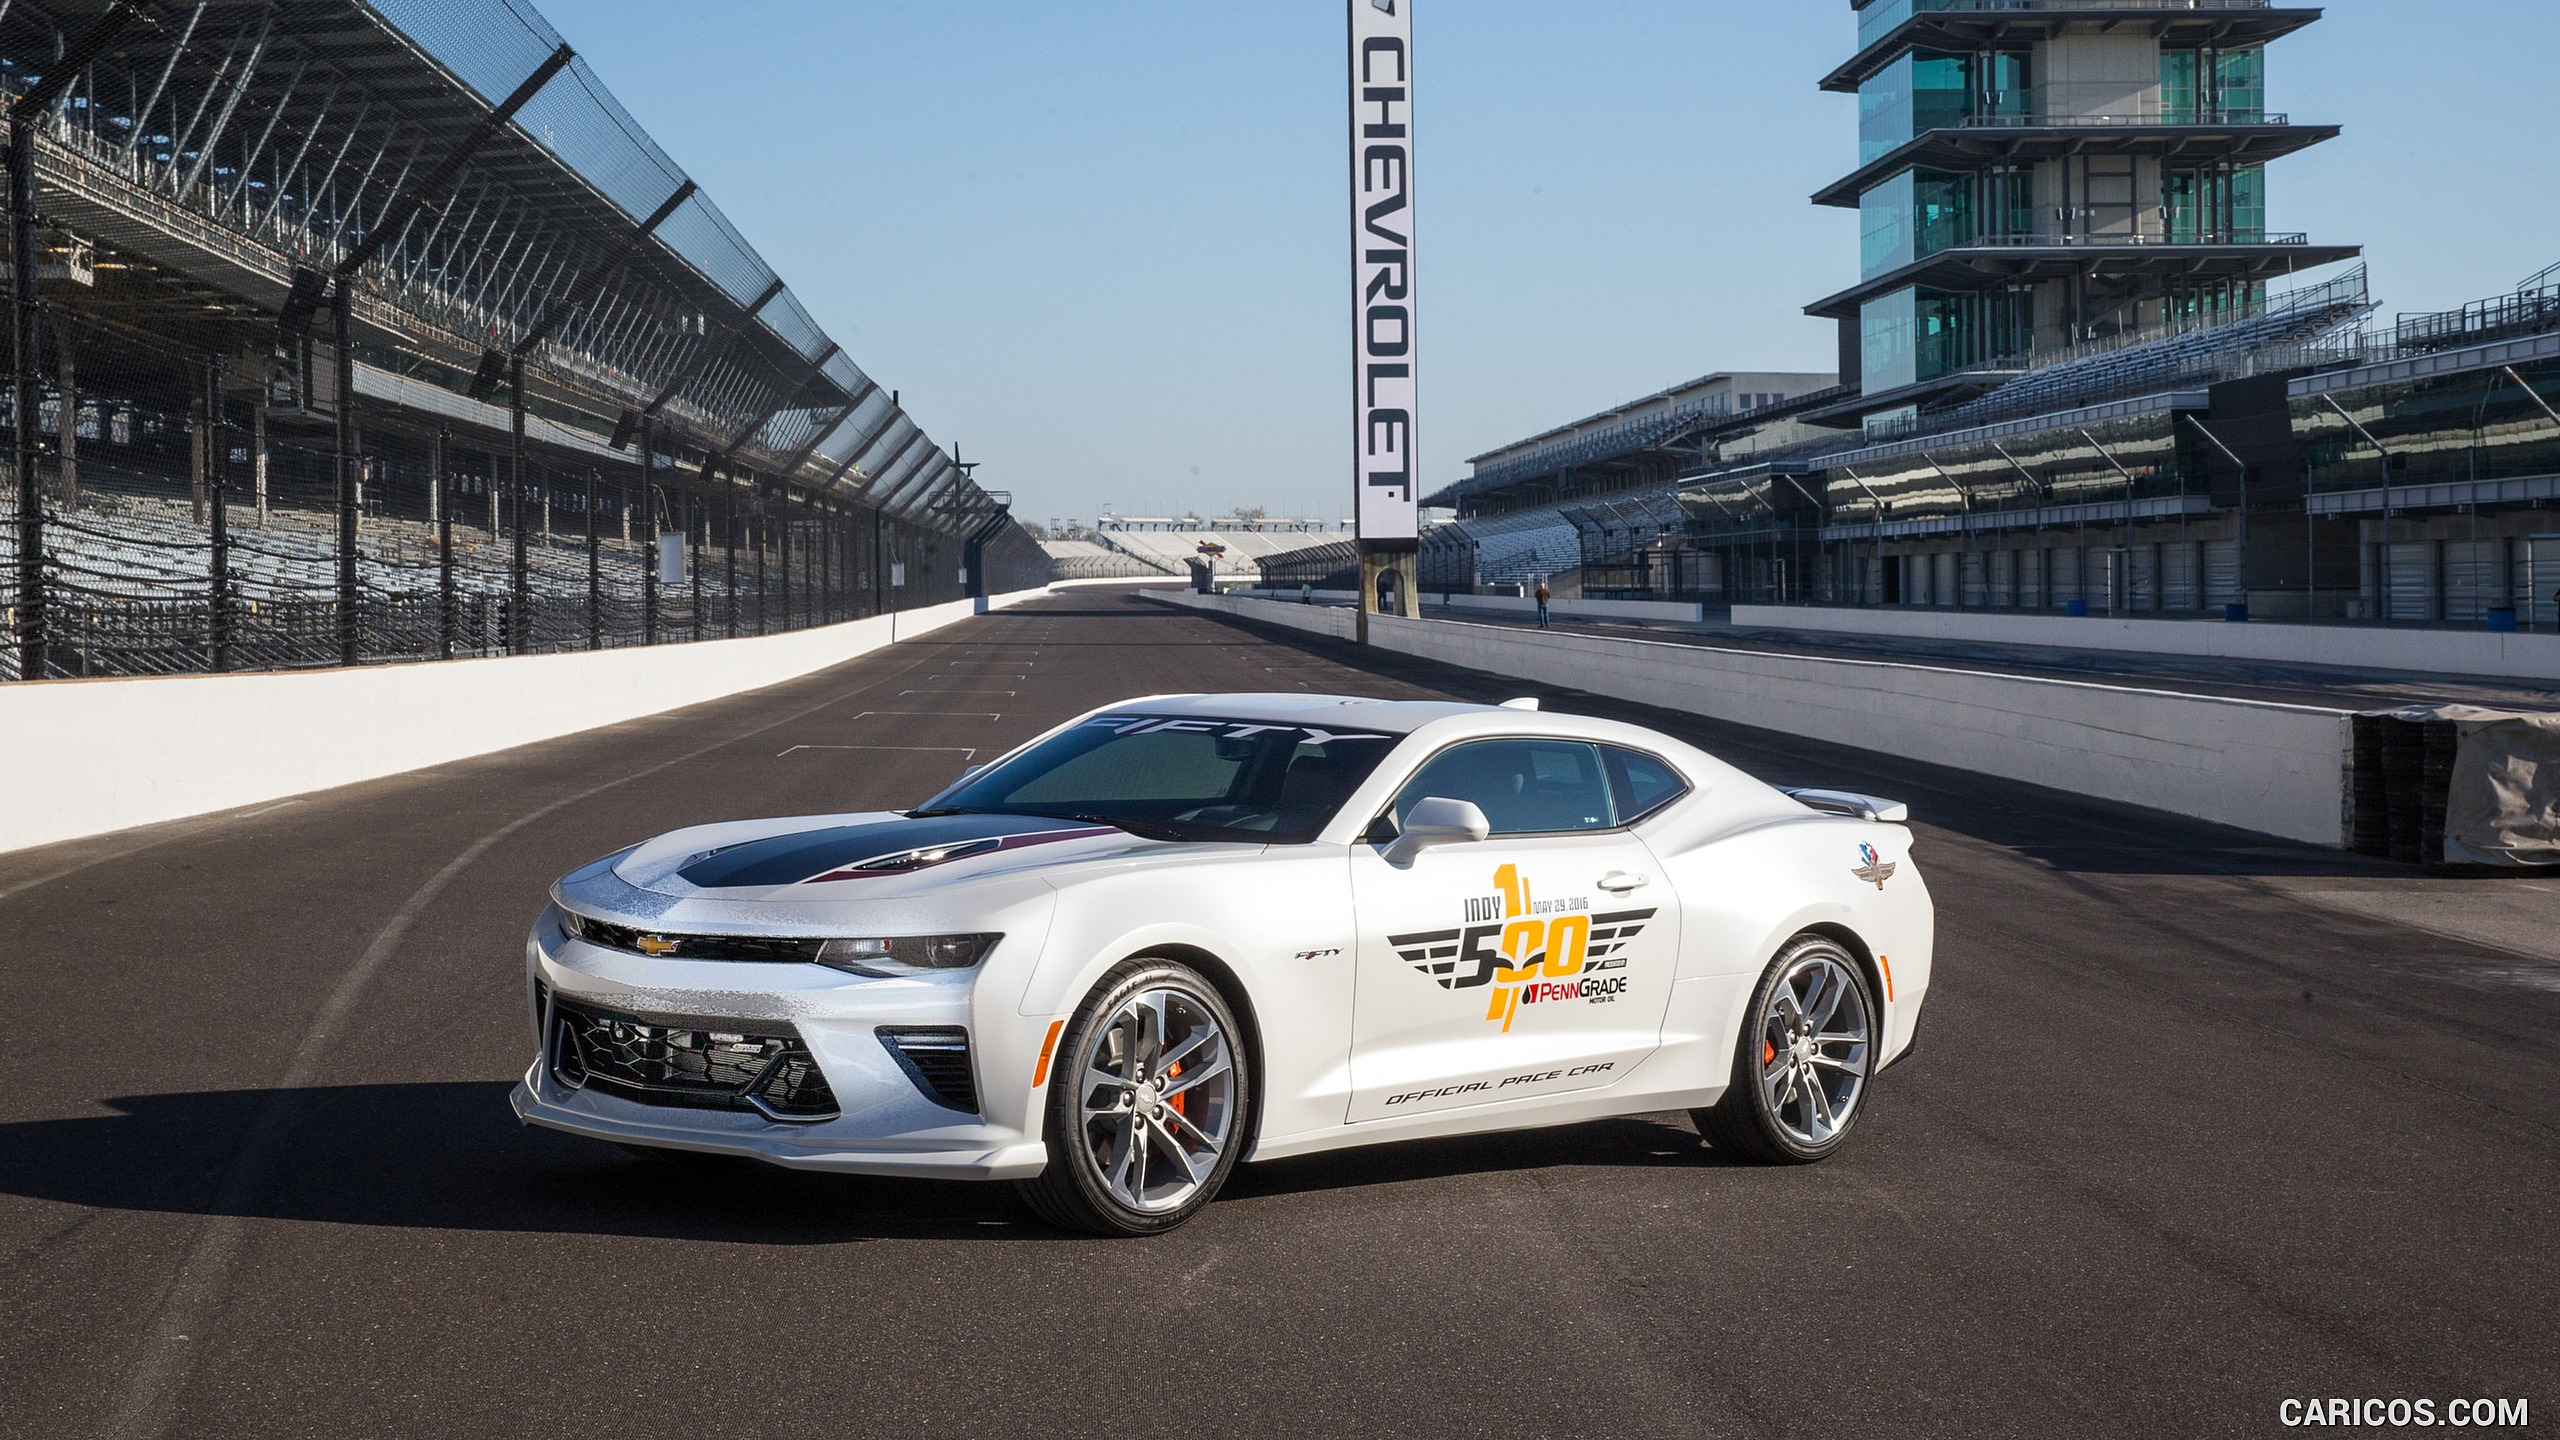 2016 Chevrolet Camaro SS Indy 500 Pace Car 2017 50th Anniversary 2560x1440